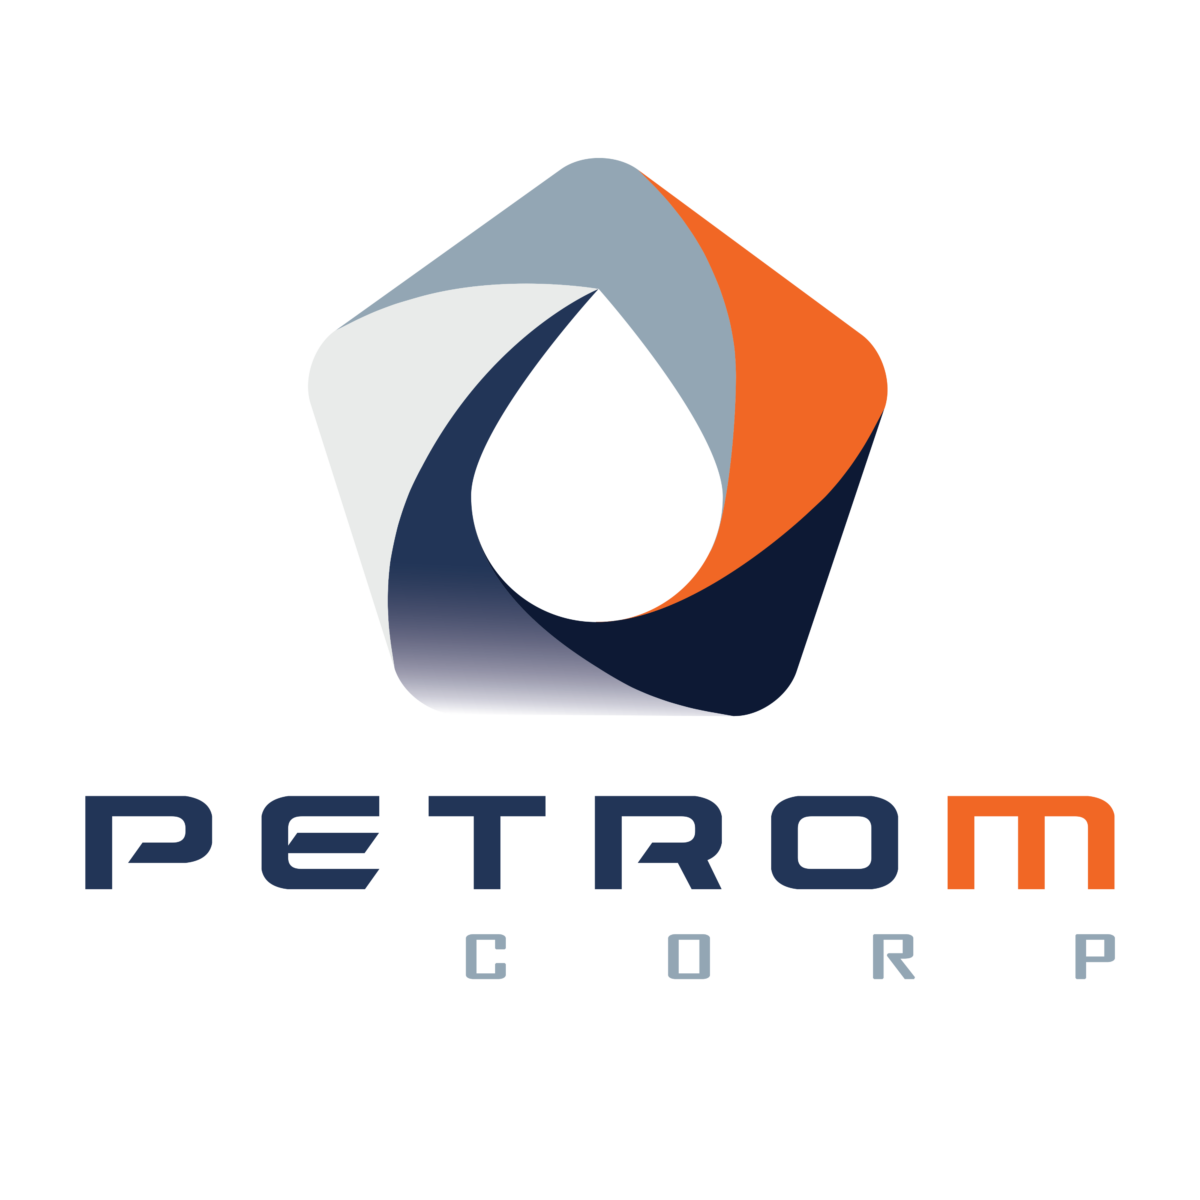 PETROM-CORP-ICON-TITLE-1200x1200.png